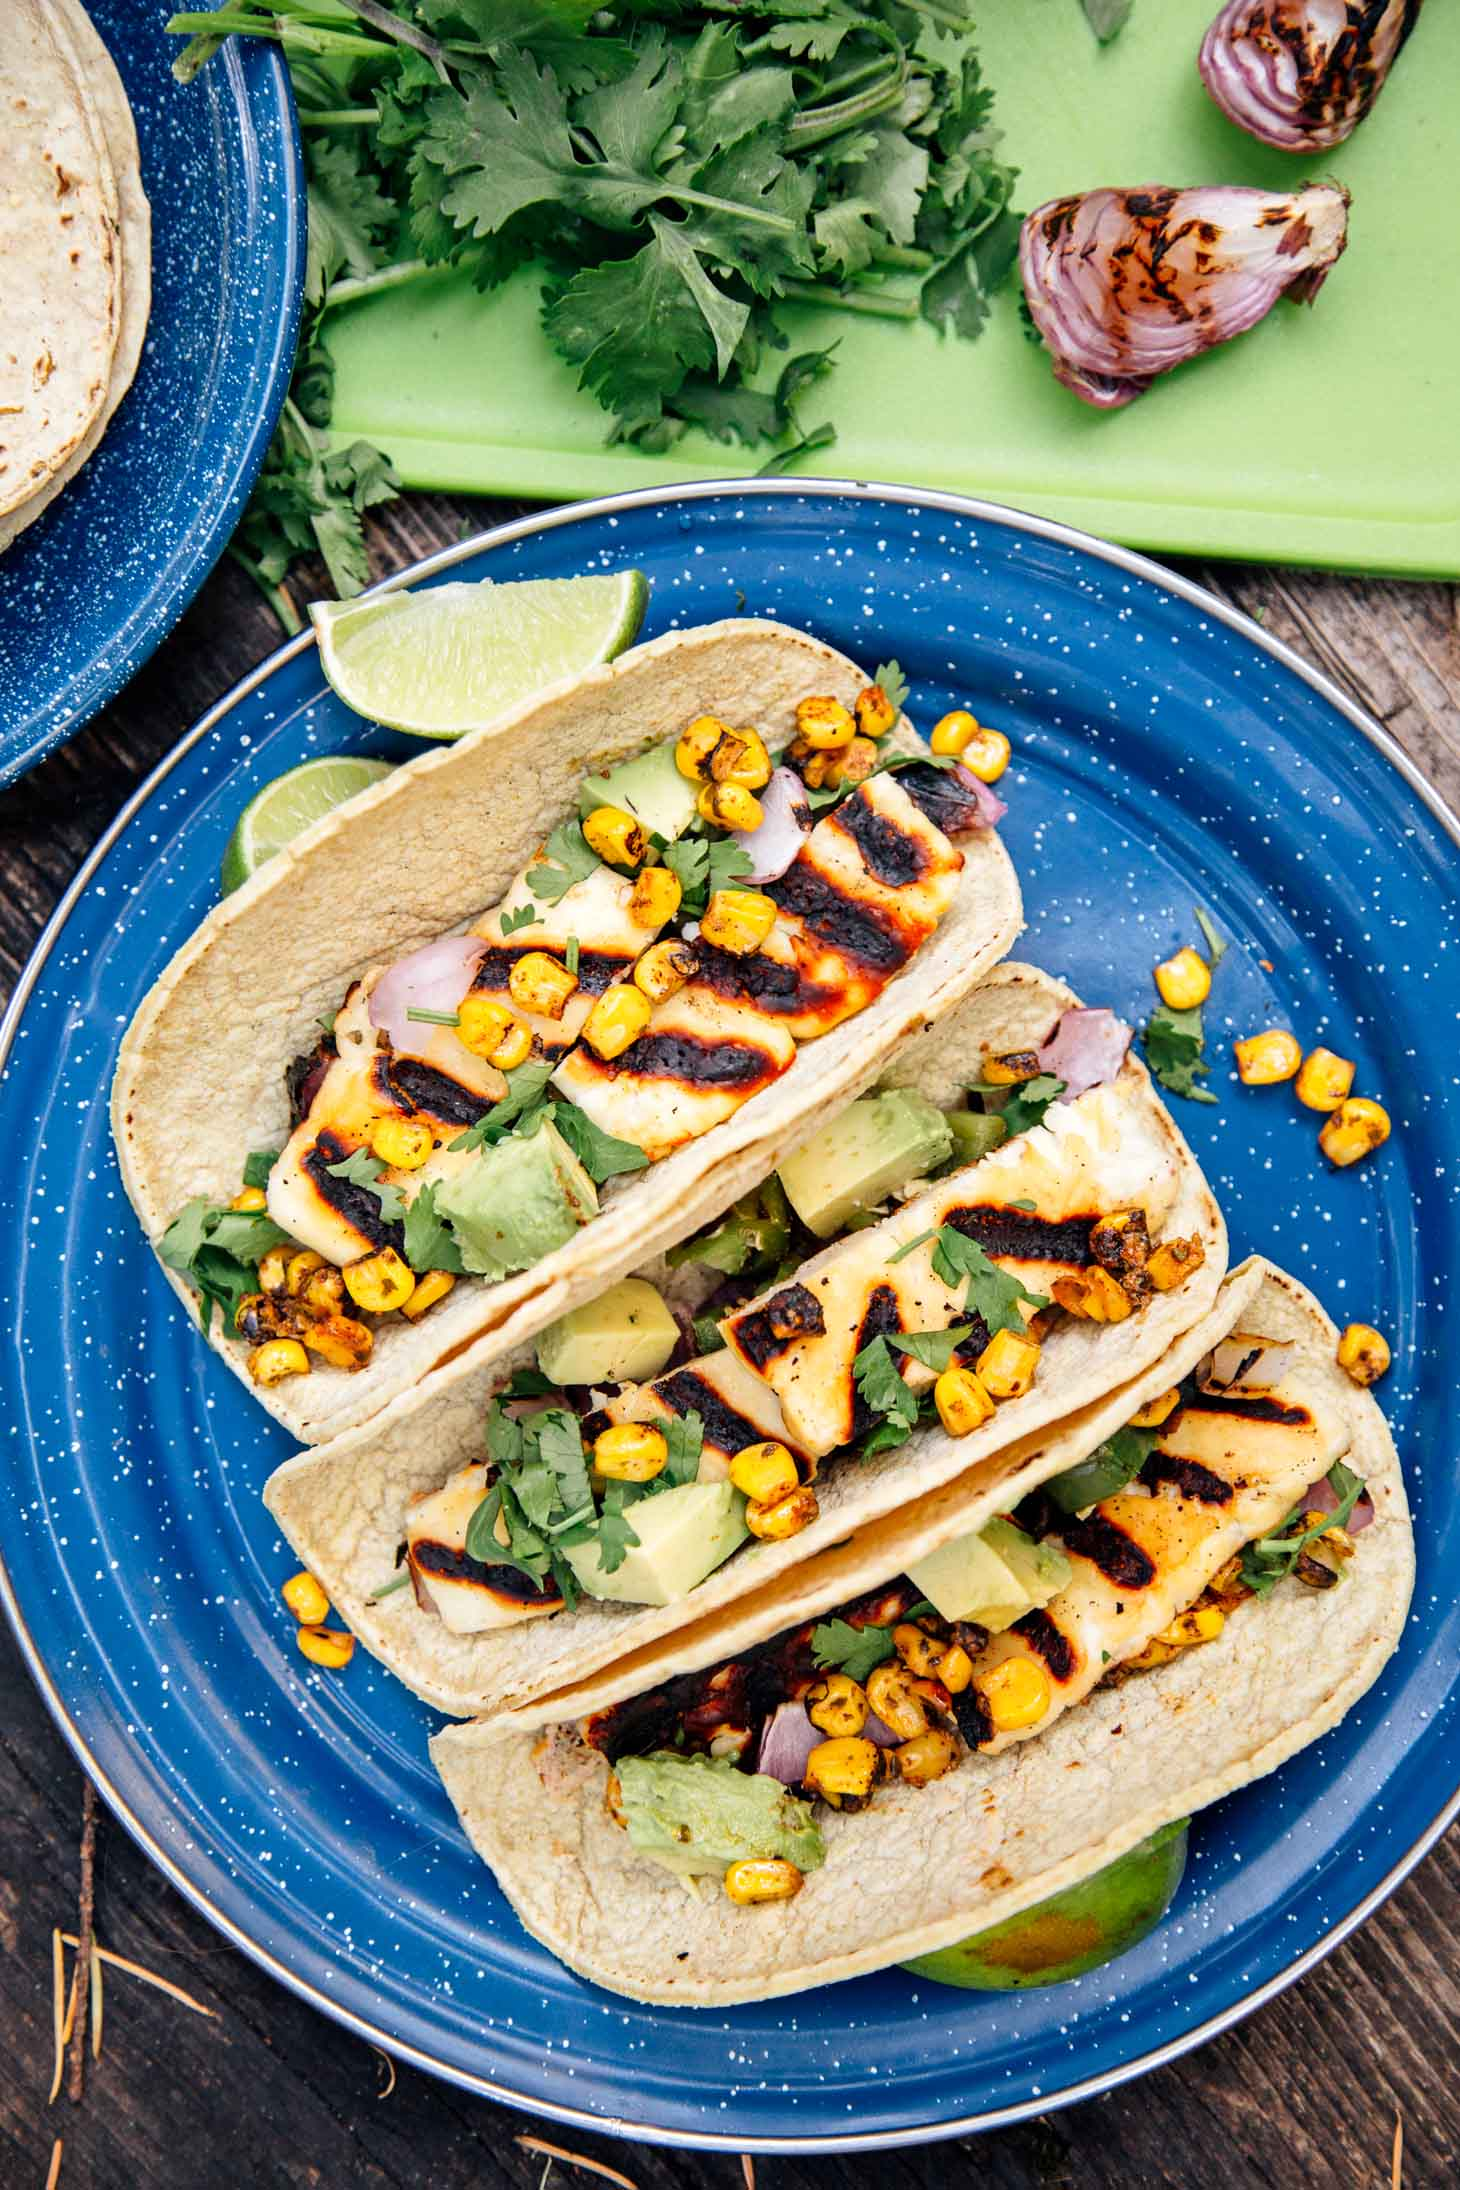 These Grilled Halloumi Tacos are a great vegetarian camping meal. Easy to prepare and even easier to clean up, this is simple camping food at it's best!